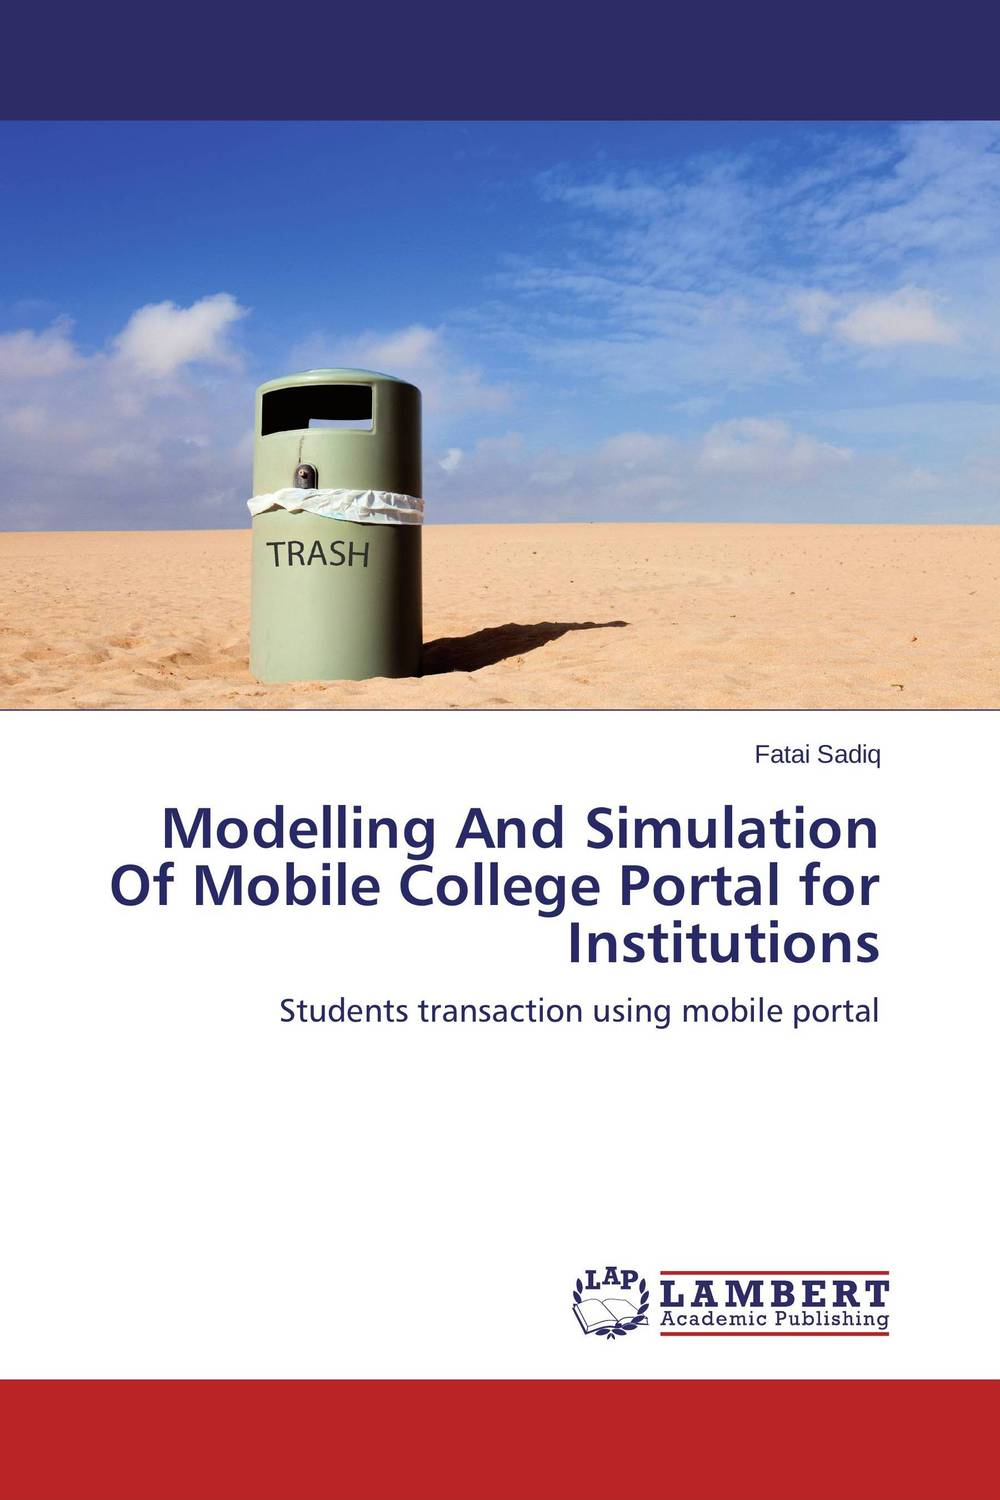 Modelling And Simulation Of Mobile College Portal for Institutions видеоигра софтклаб zanzarah the hidden portal